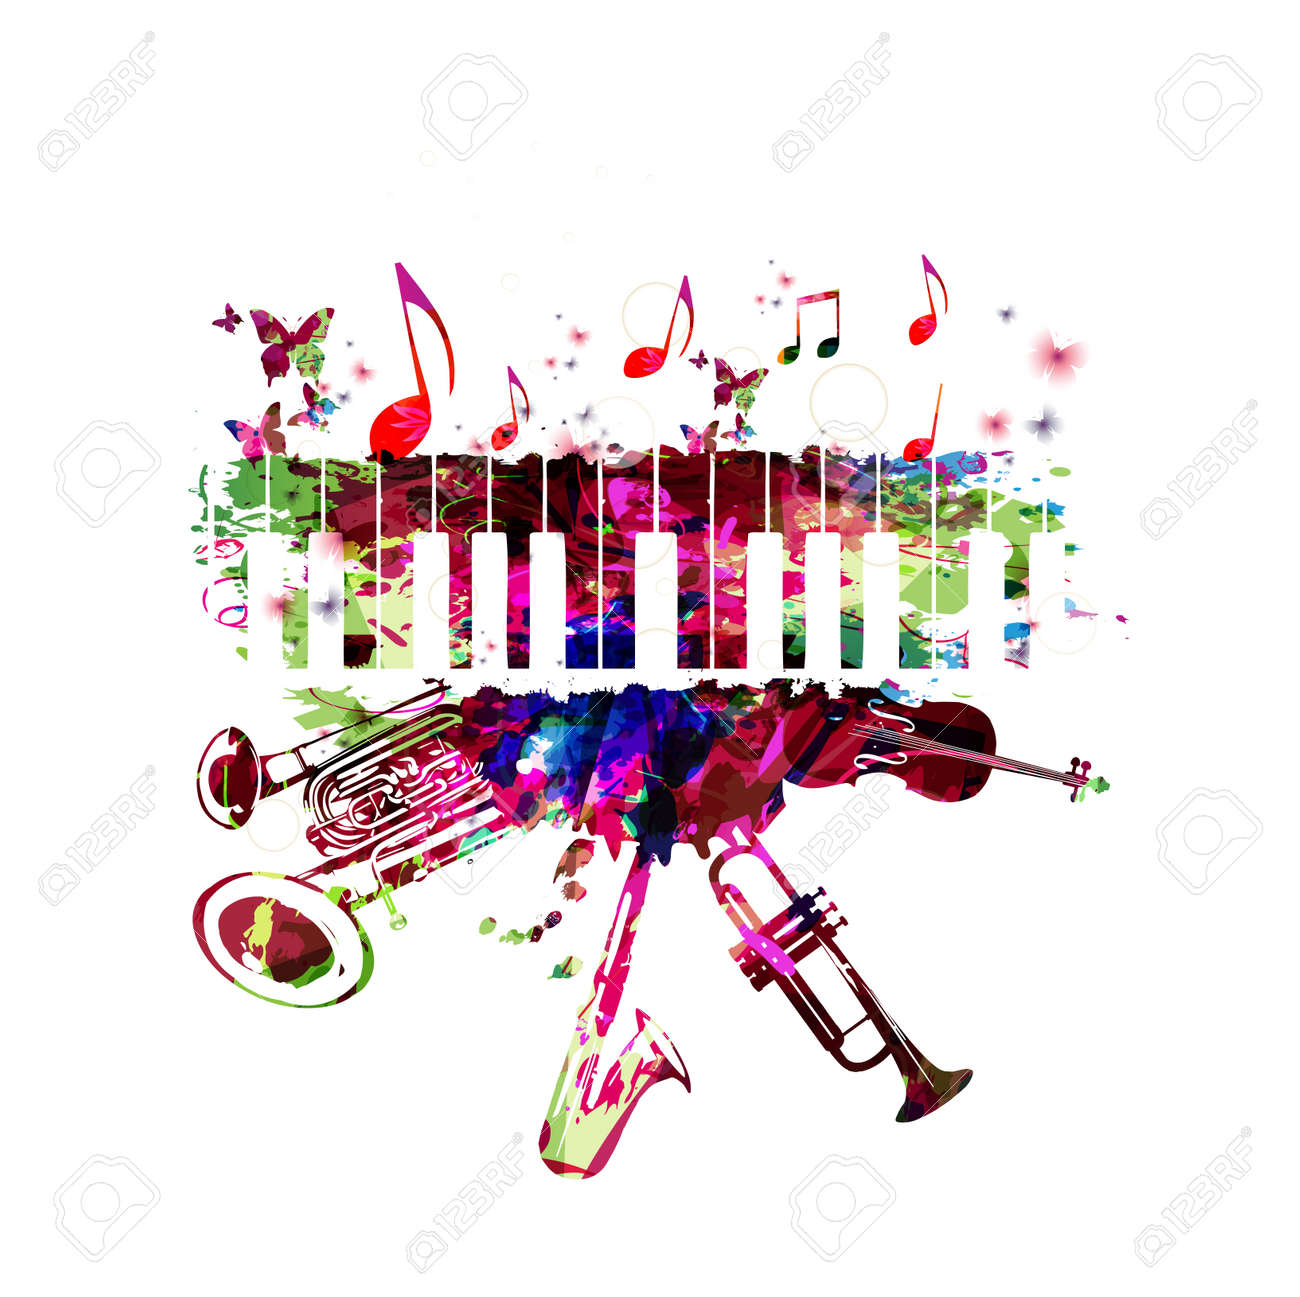 Music poster with music instruments. Colorful piano keyboard, double bell euphonium, saxophone, trumpet, violoncello and guitar with music notes isolated vector illustration design - 81228042